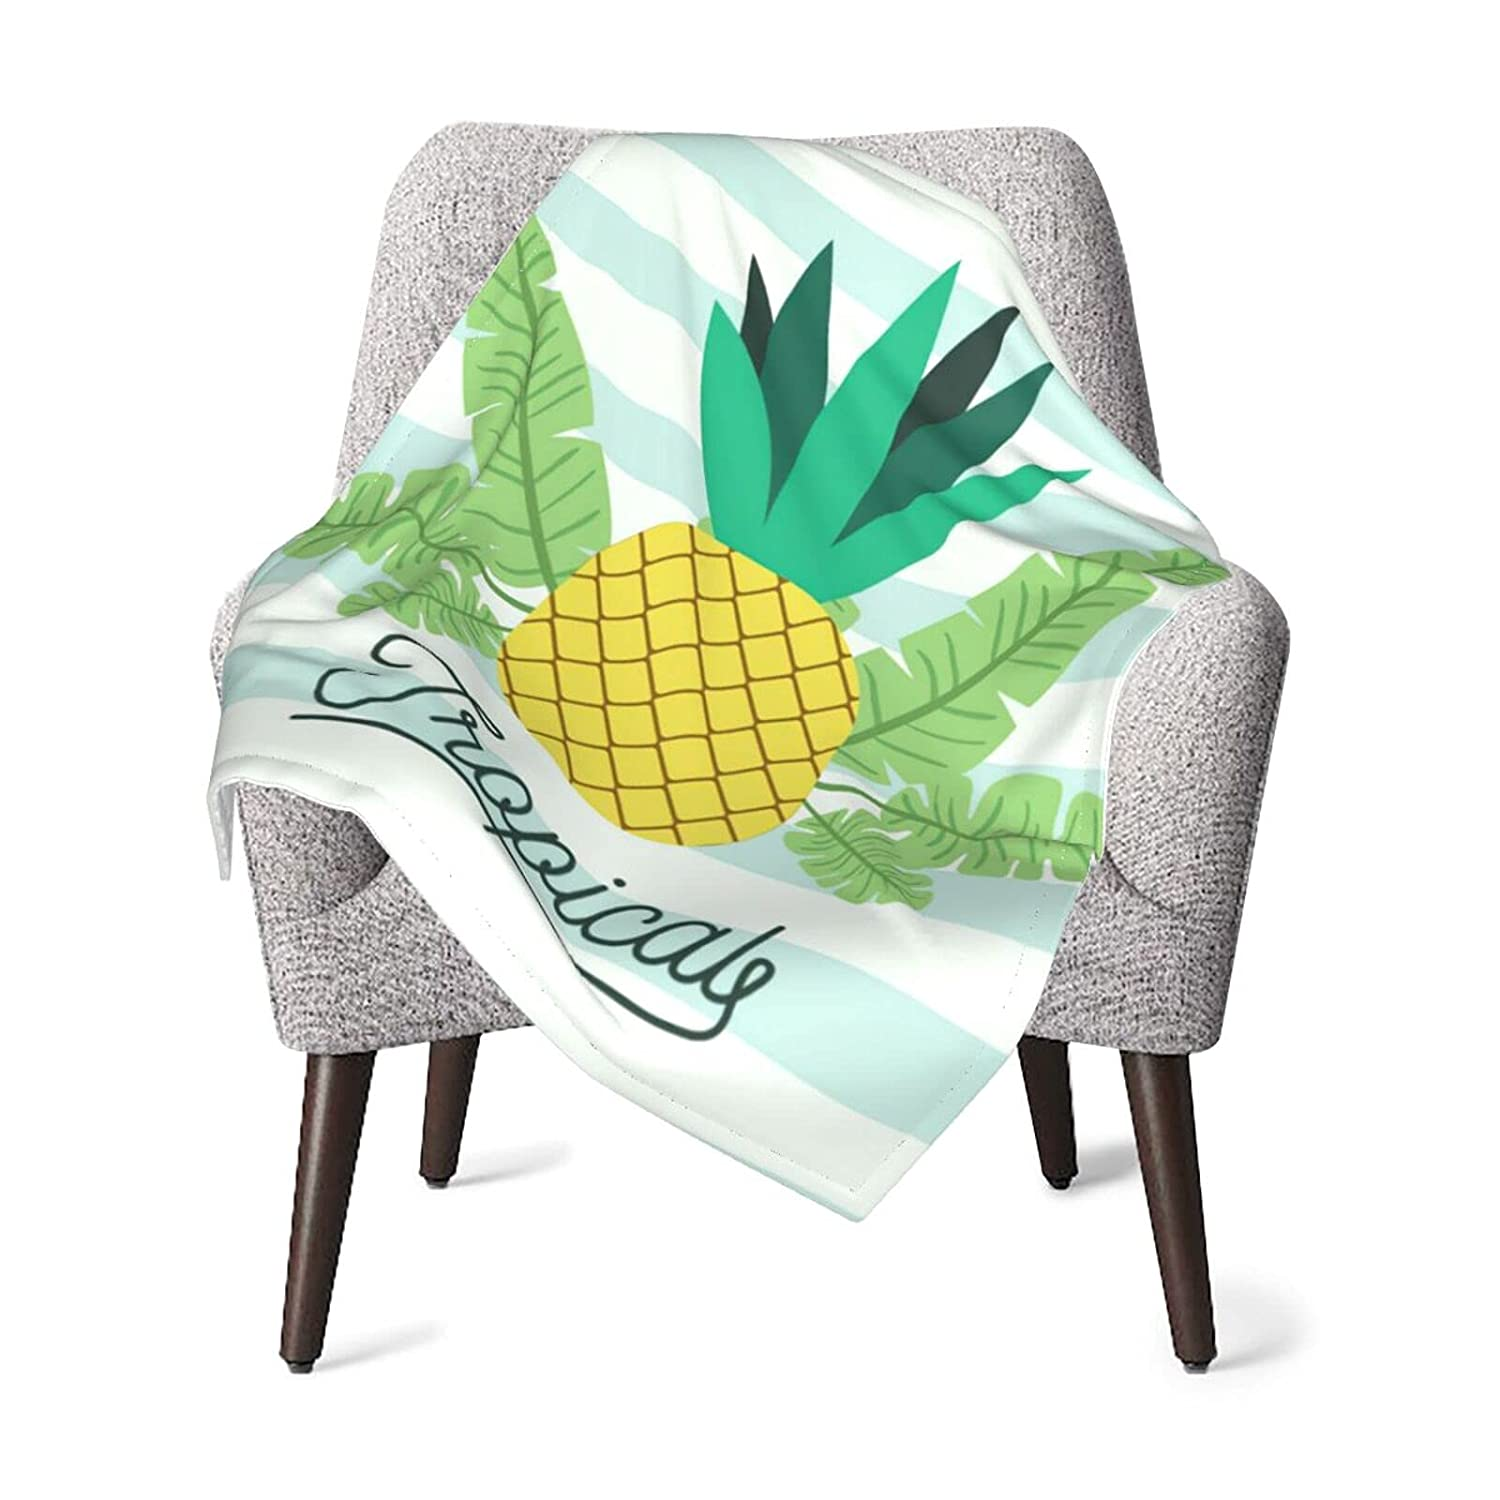 Pineapple Tropical Fruit with Leaves Baby Blanket Max 54% OFF for ...